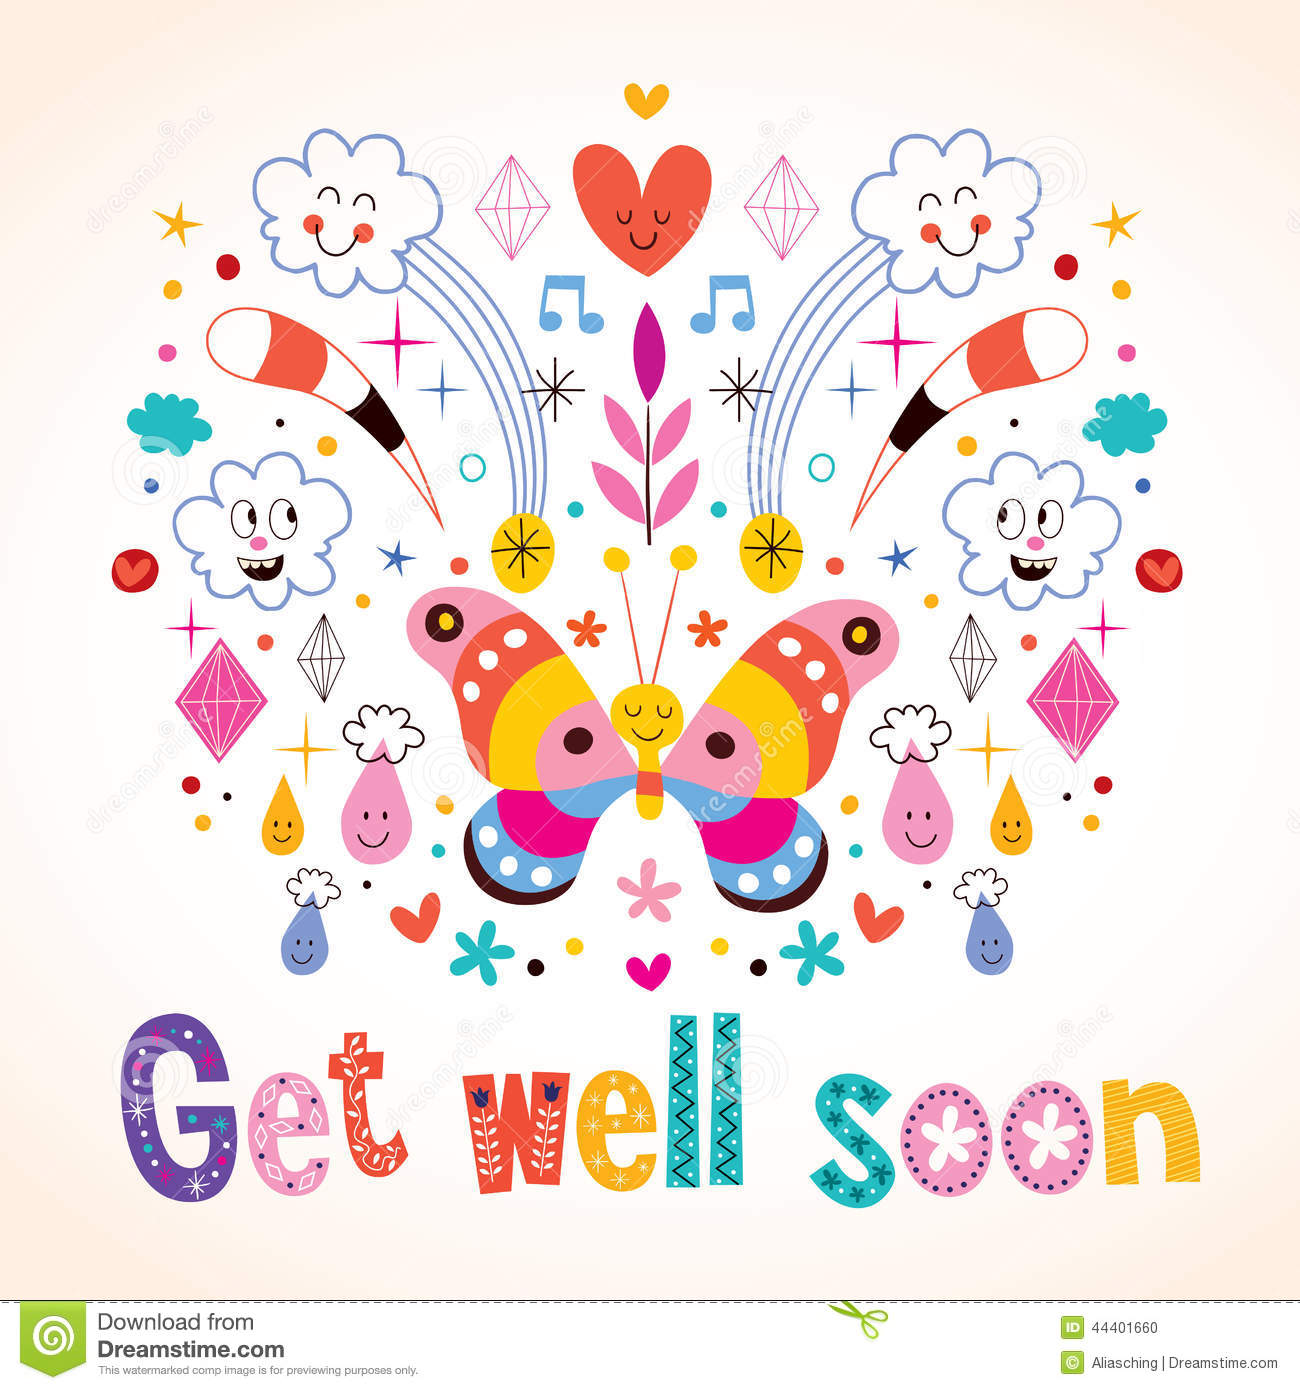 Download get well card tiredriveeasy download get well card get well soon greeting m4hsunfo Choice Image